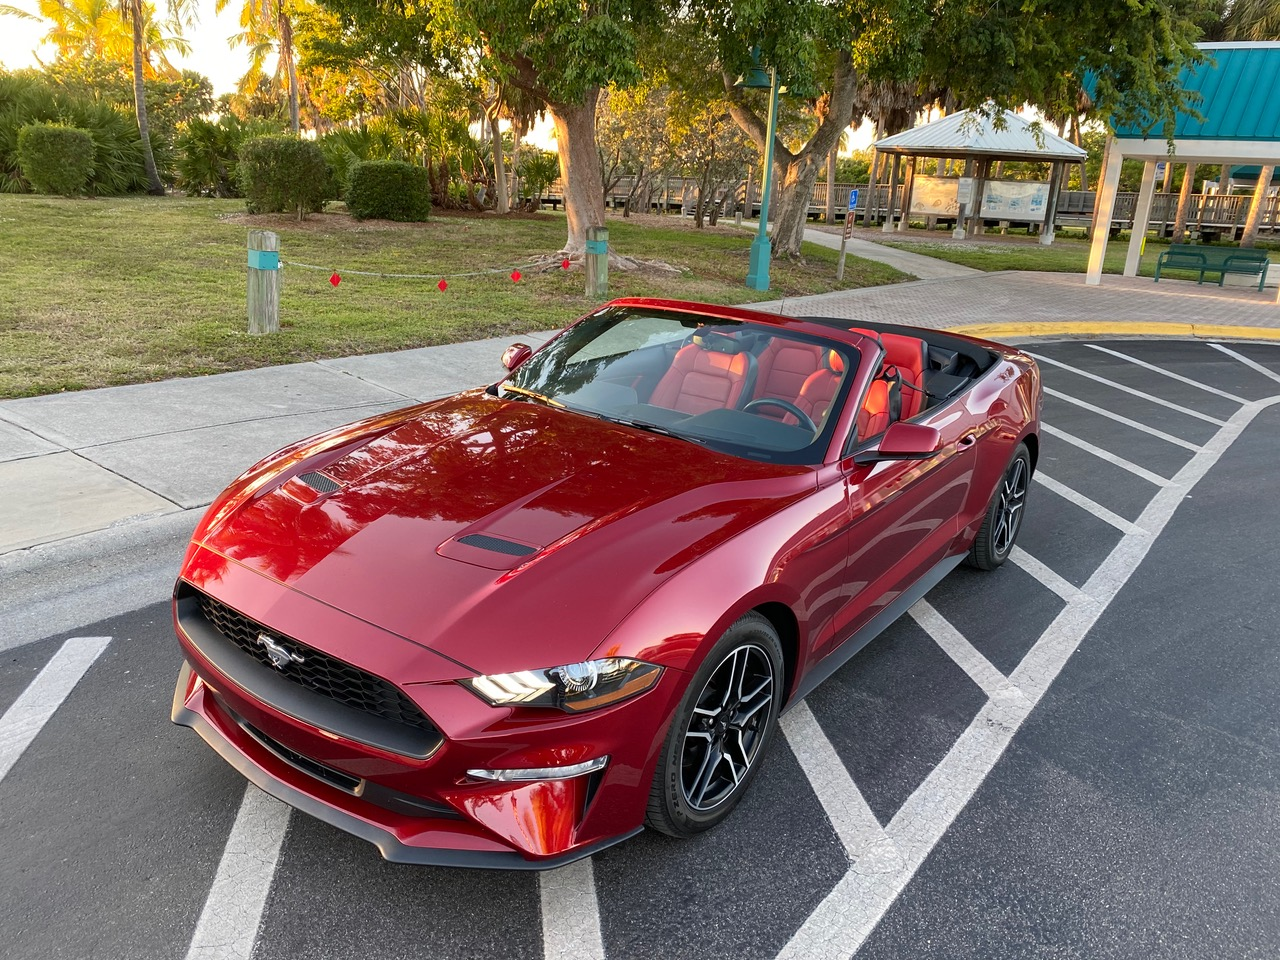 2020 Mustang Convertible Auto Channel Review By Thom Cannell